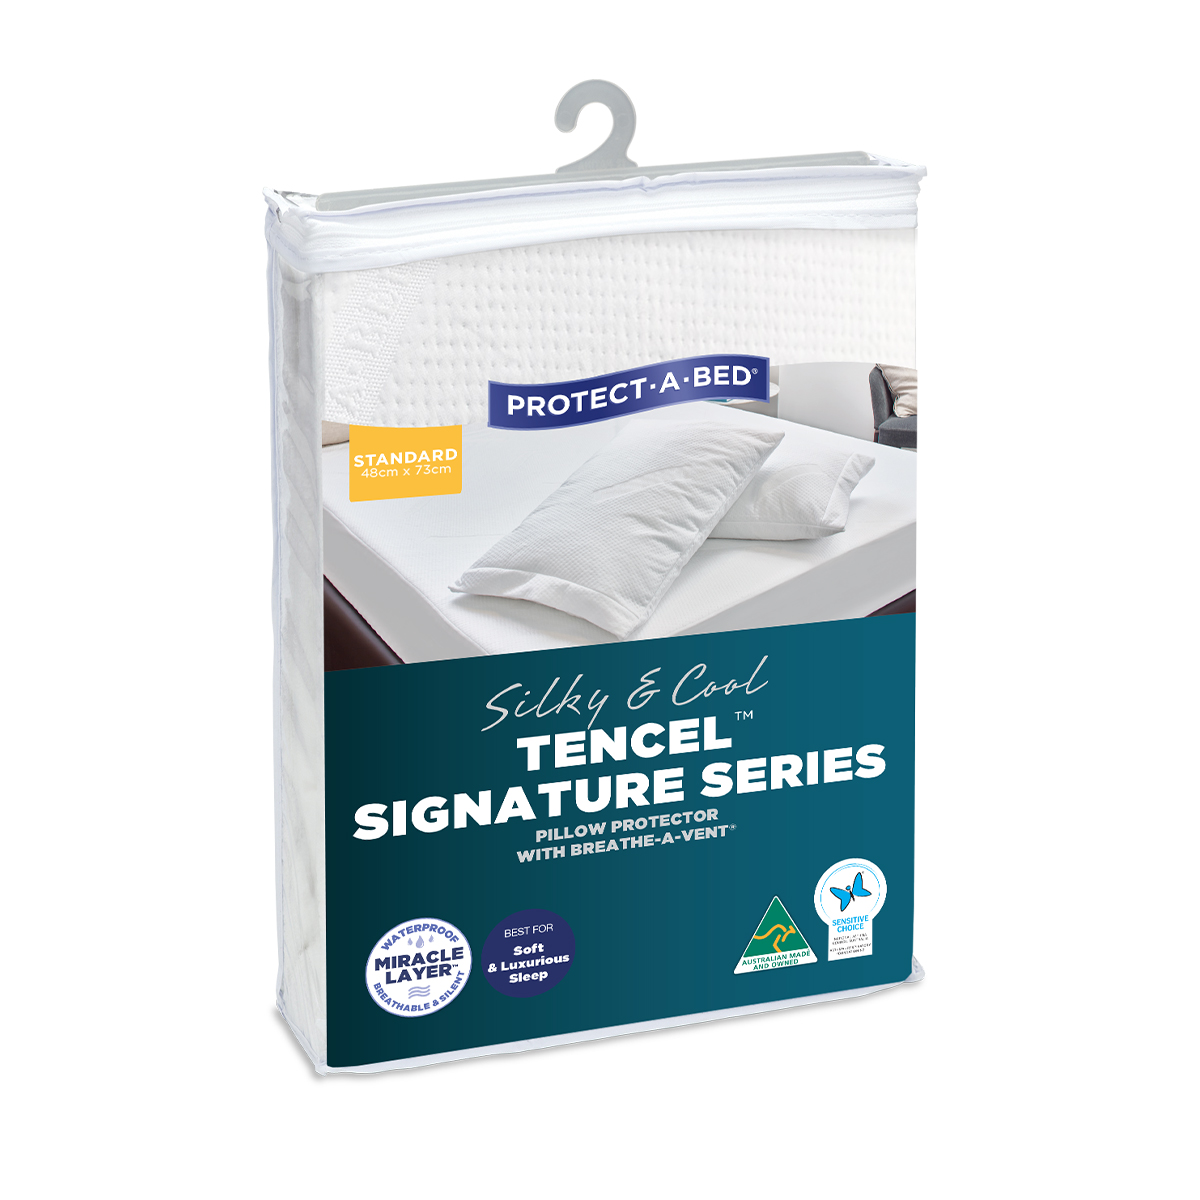 Protect-A-Bed Tencel Signature Series Waterproof Pillow Protector